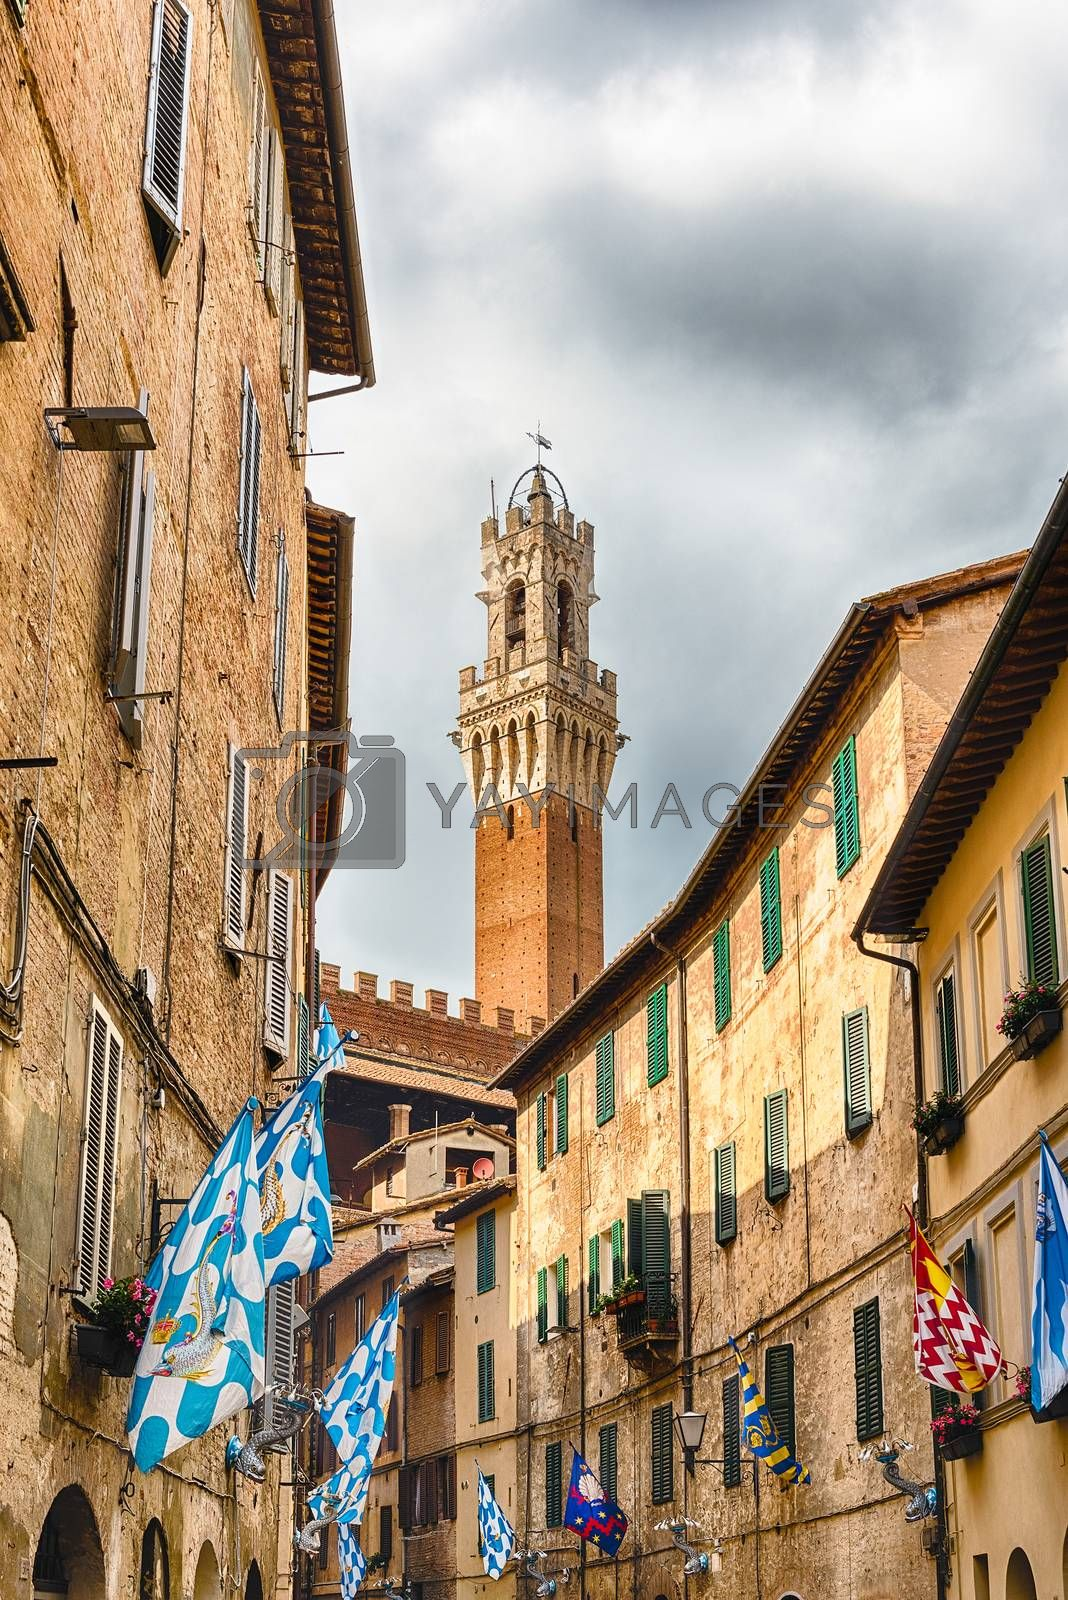 Walking in the picturesque streets in the medieval city centre of Siena, one of the nation's most visited tourist attractions in Italy